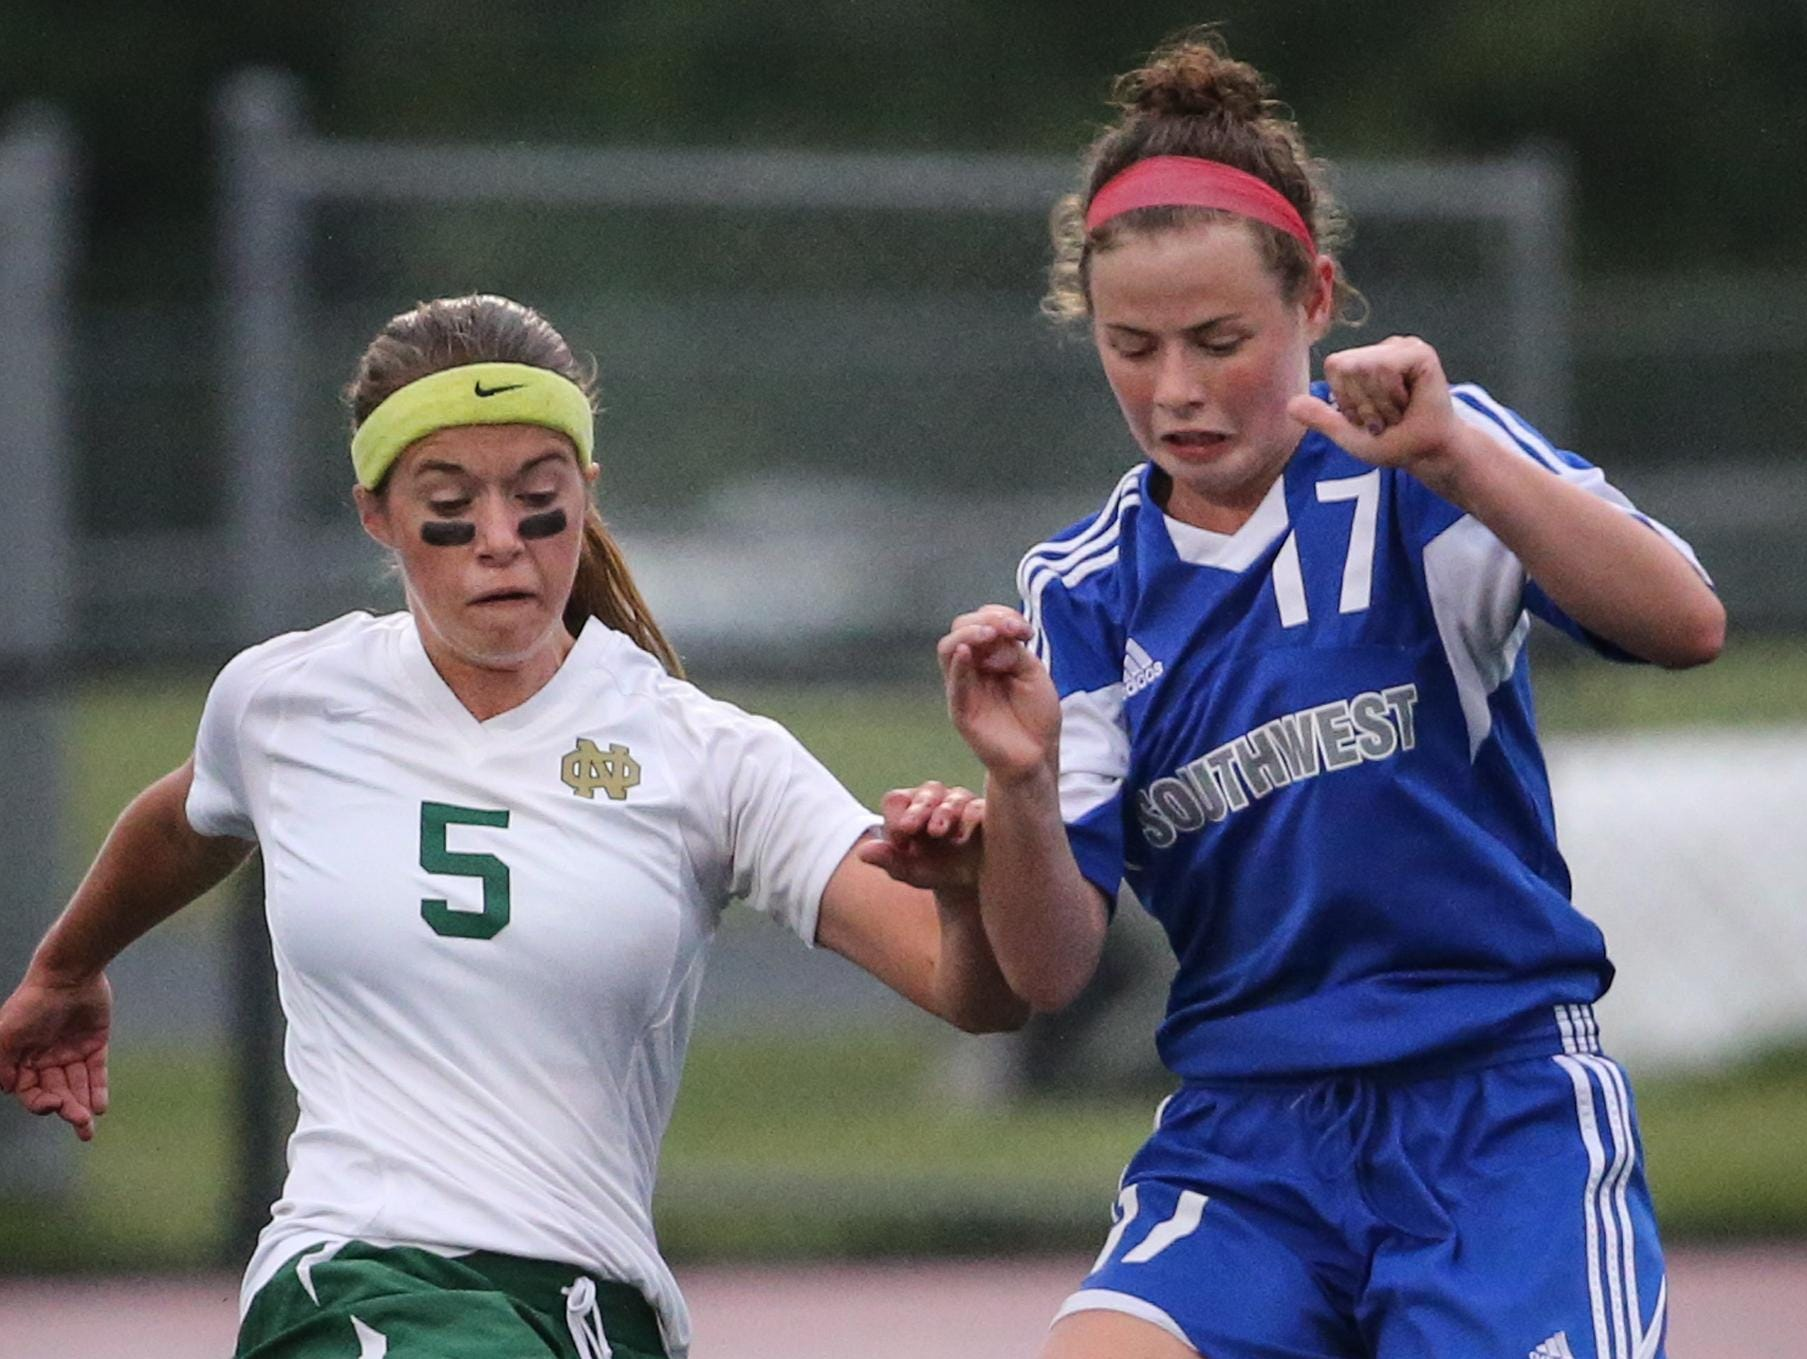 Mikayla Ross of Oshkosh North and Alexis Cumber of Green Bay Southwest go for the ball in Thursday's WIAA Divsion 2 sectional semifinal.